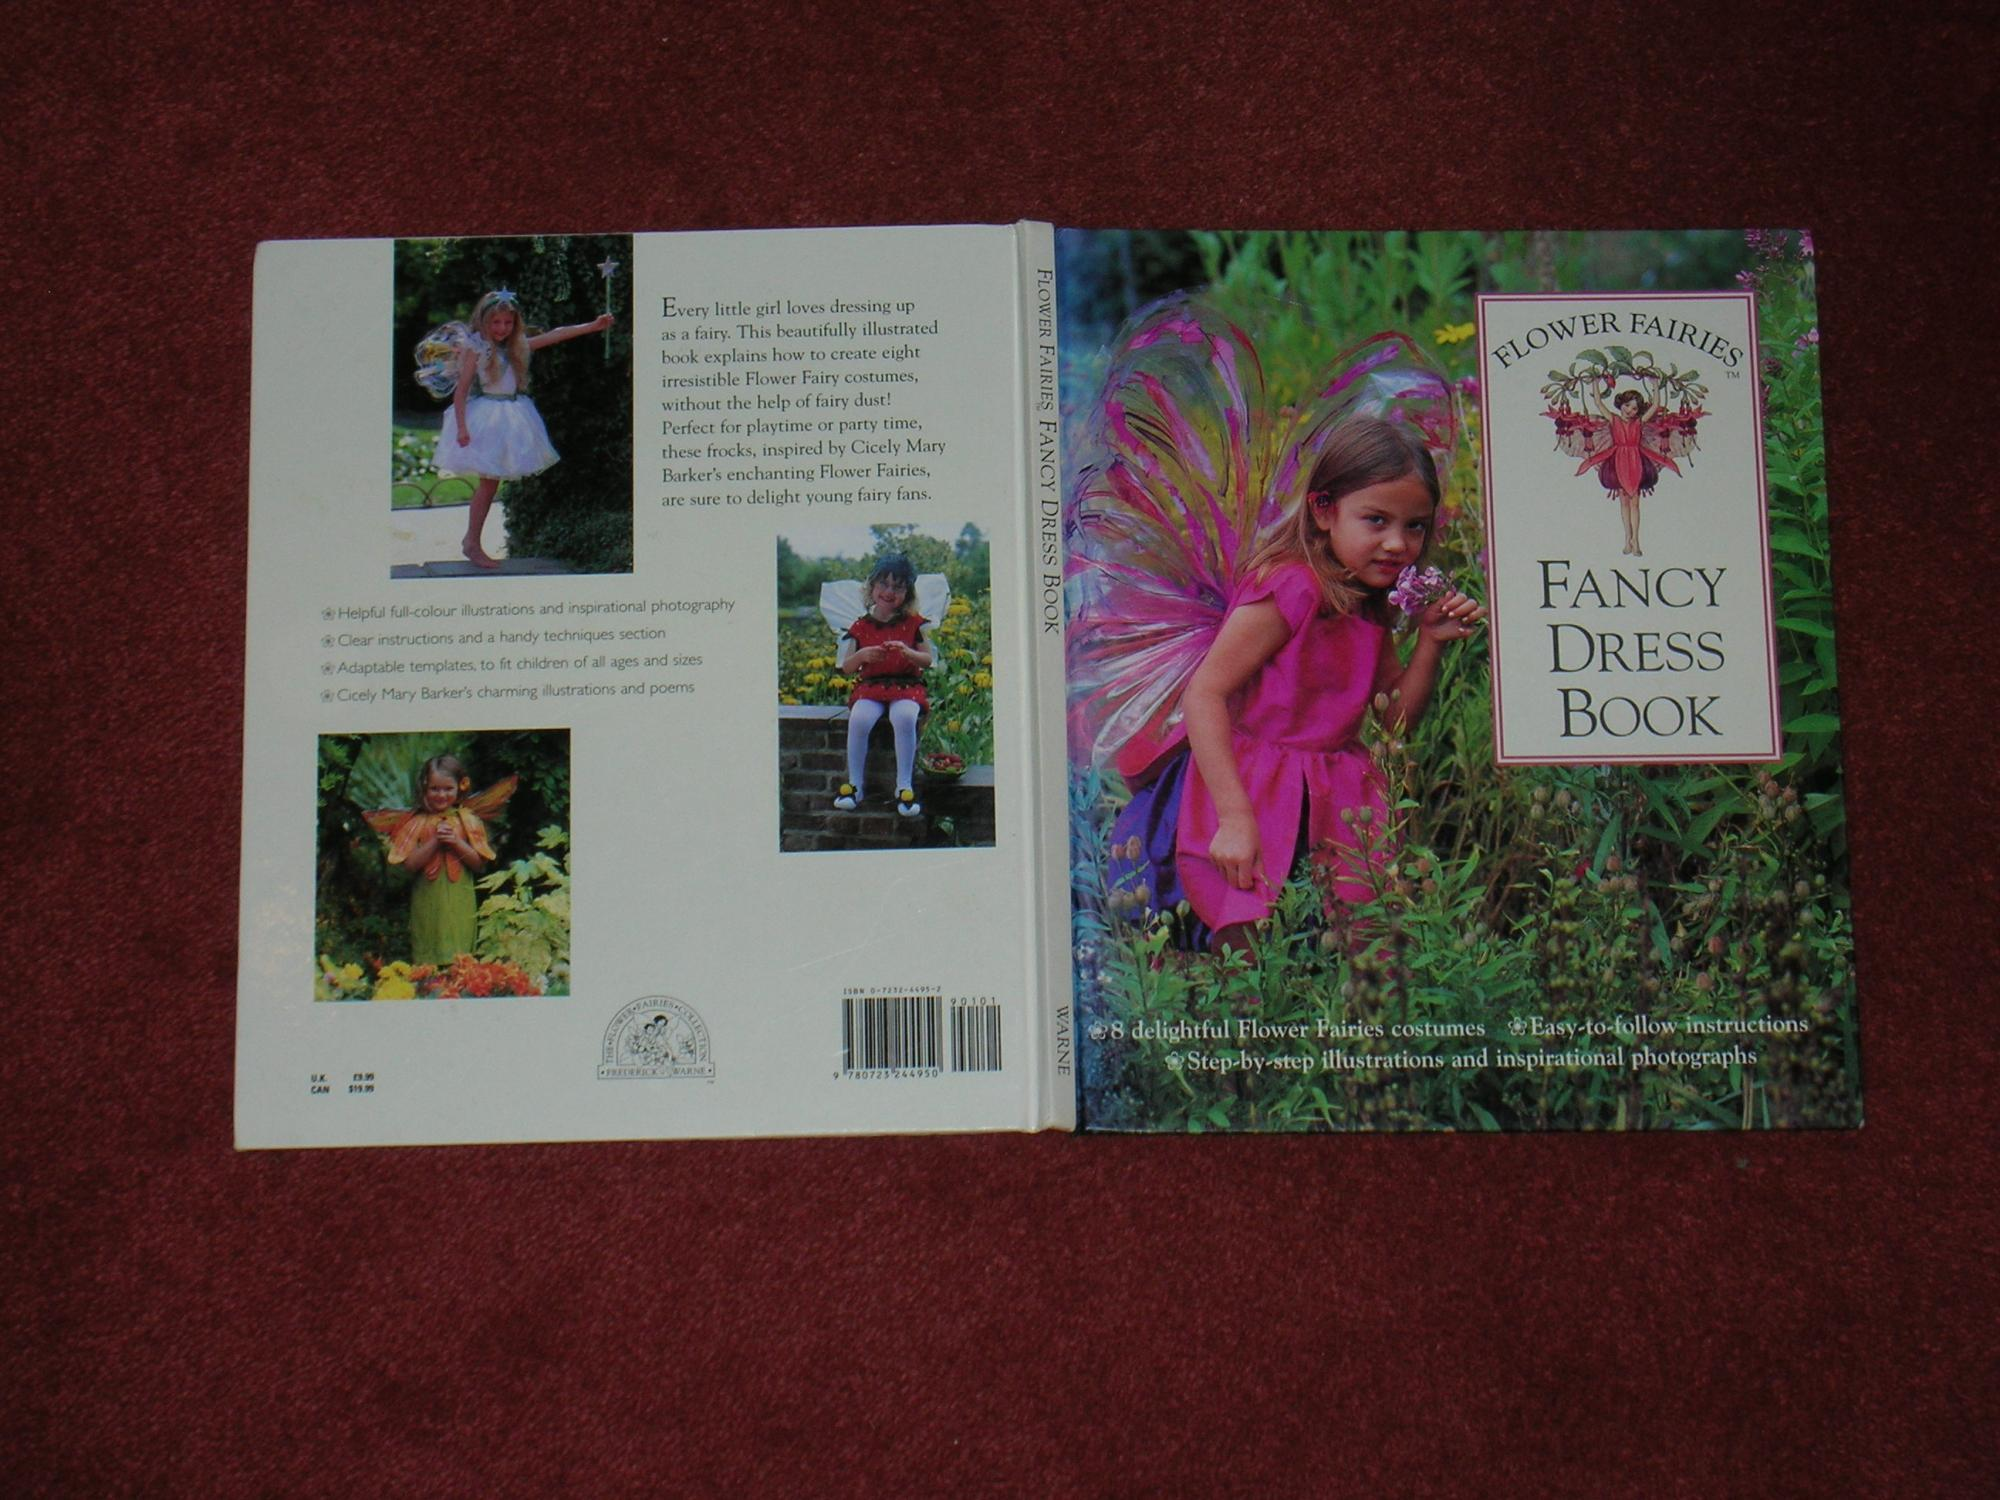 Flower Fairies Fancy Dress Book Frederick Warne London 9780723244950 Hard Cover First Edition Hencotes Books Penny Pearce